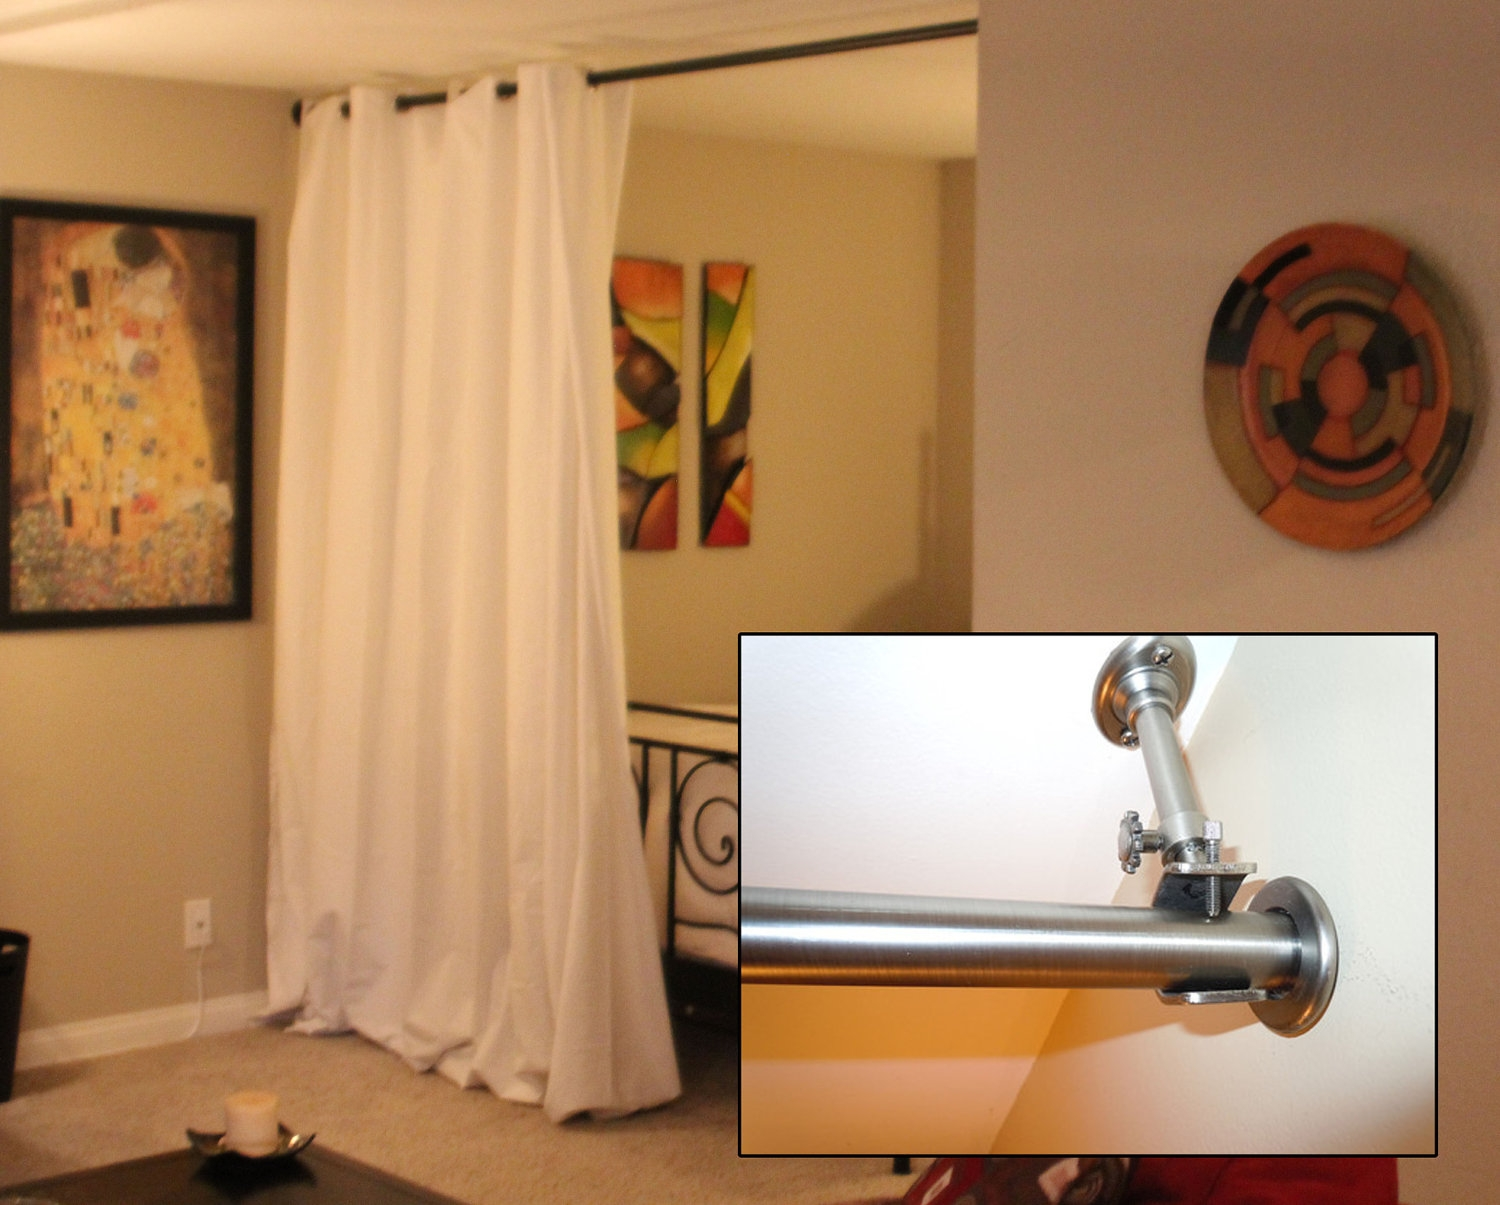 Interior Decor Tension Rod Room Divider Ikea Tension Rod In Room Curtain Divider IKEA (Image 17 of 25)